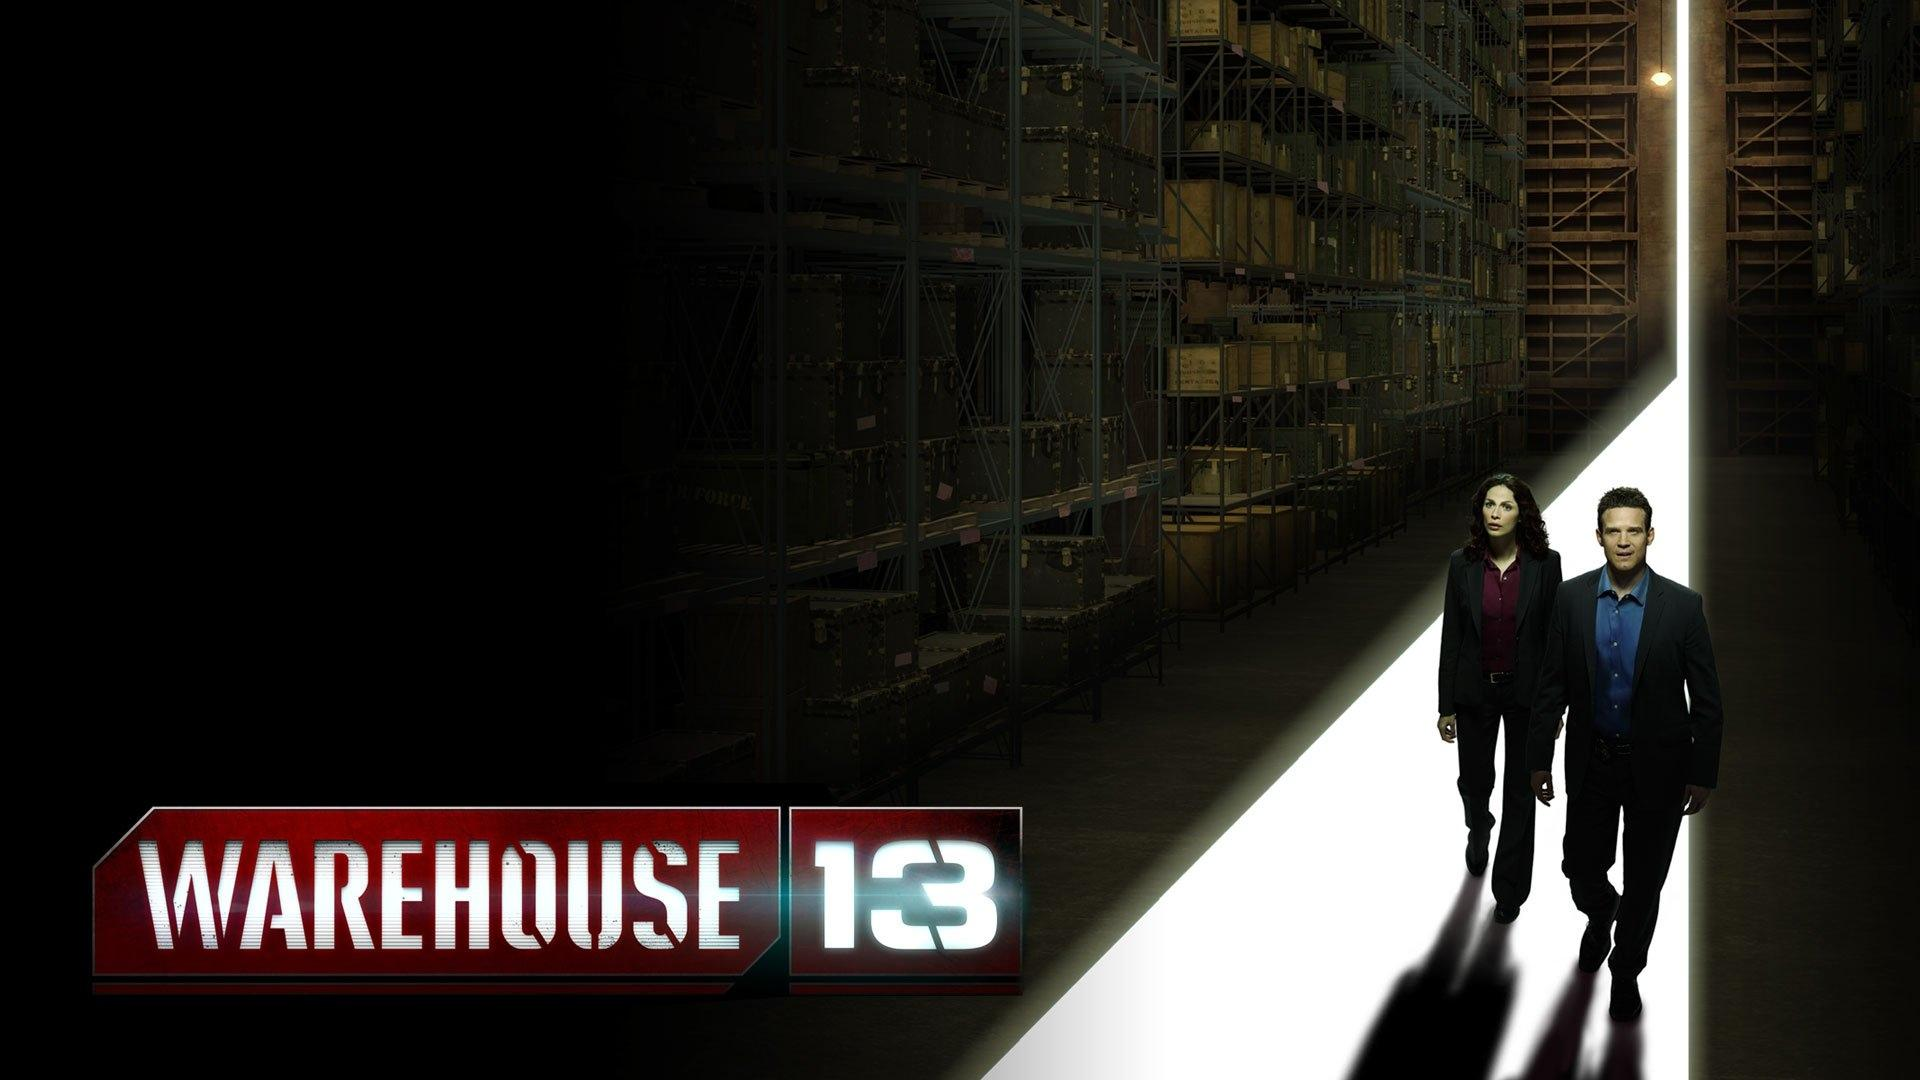 Warehouse 13 wallpapers HD quality